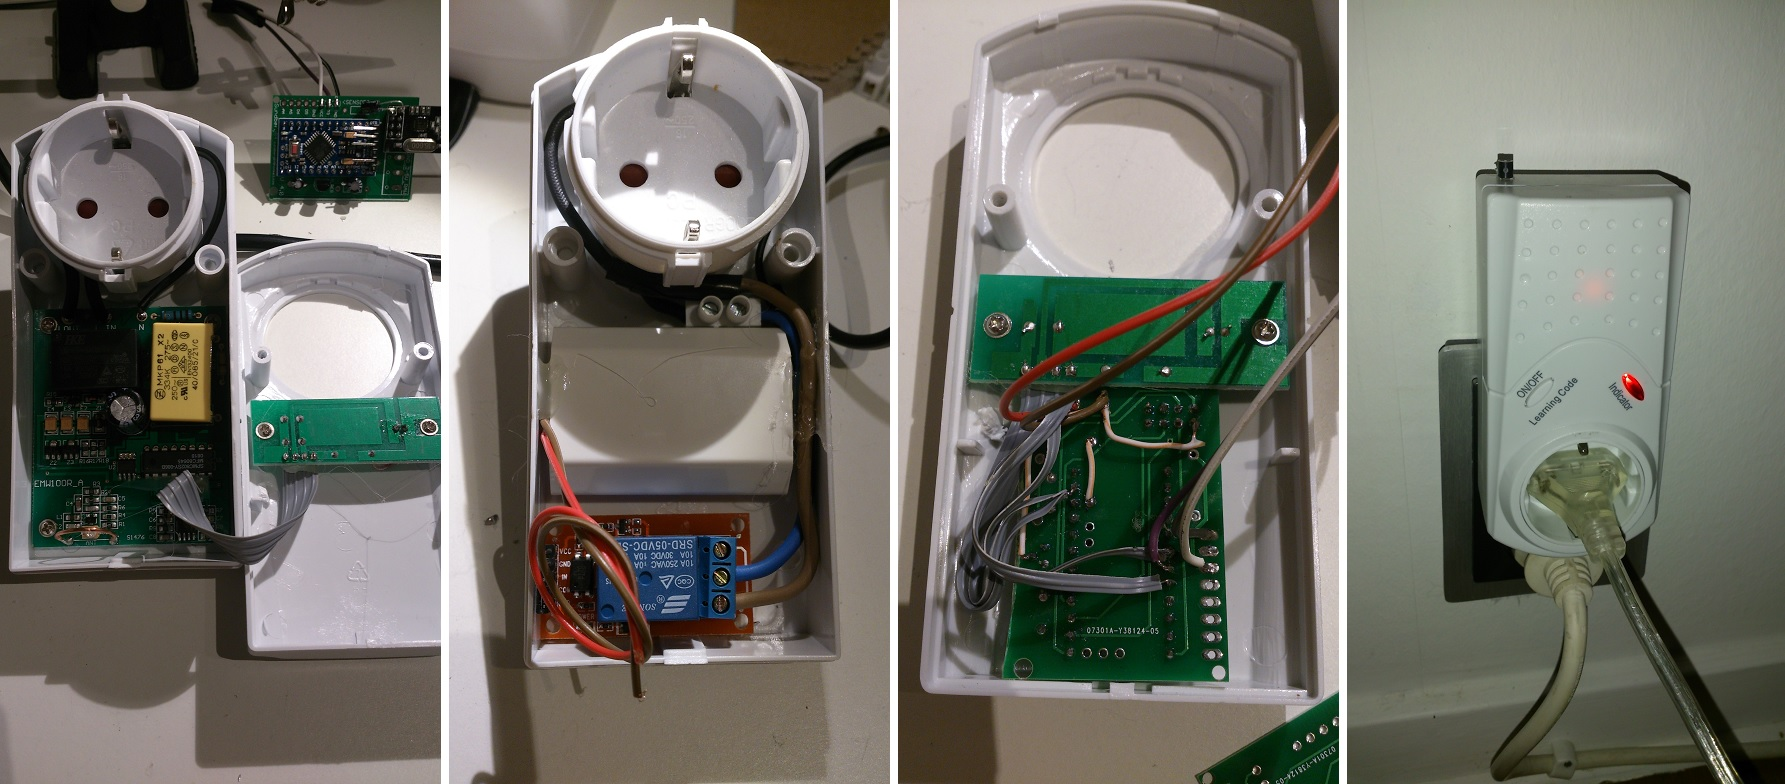 8 Lamp Outlet Smart Plug Module Mysensors Forum Wiring